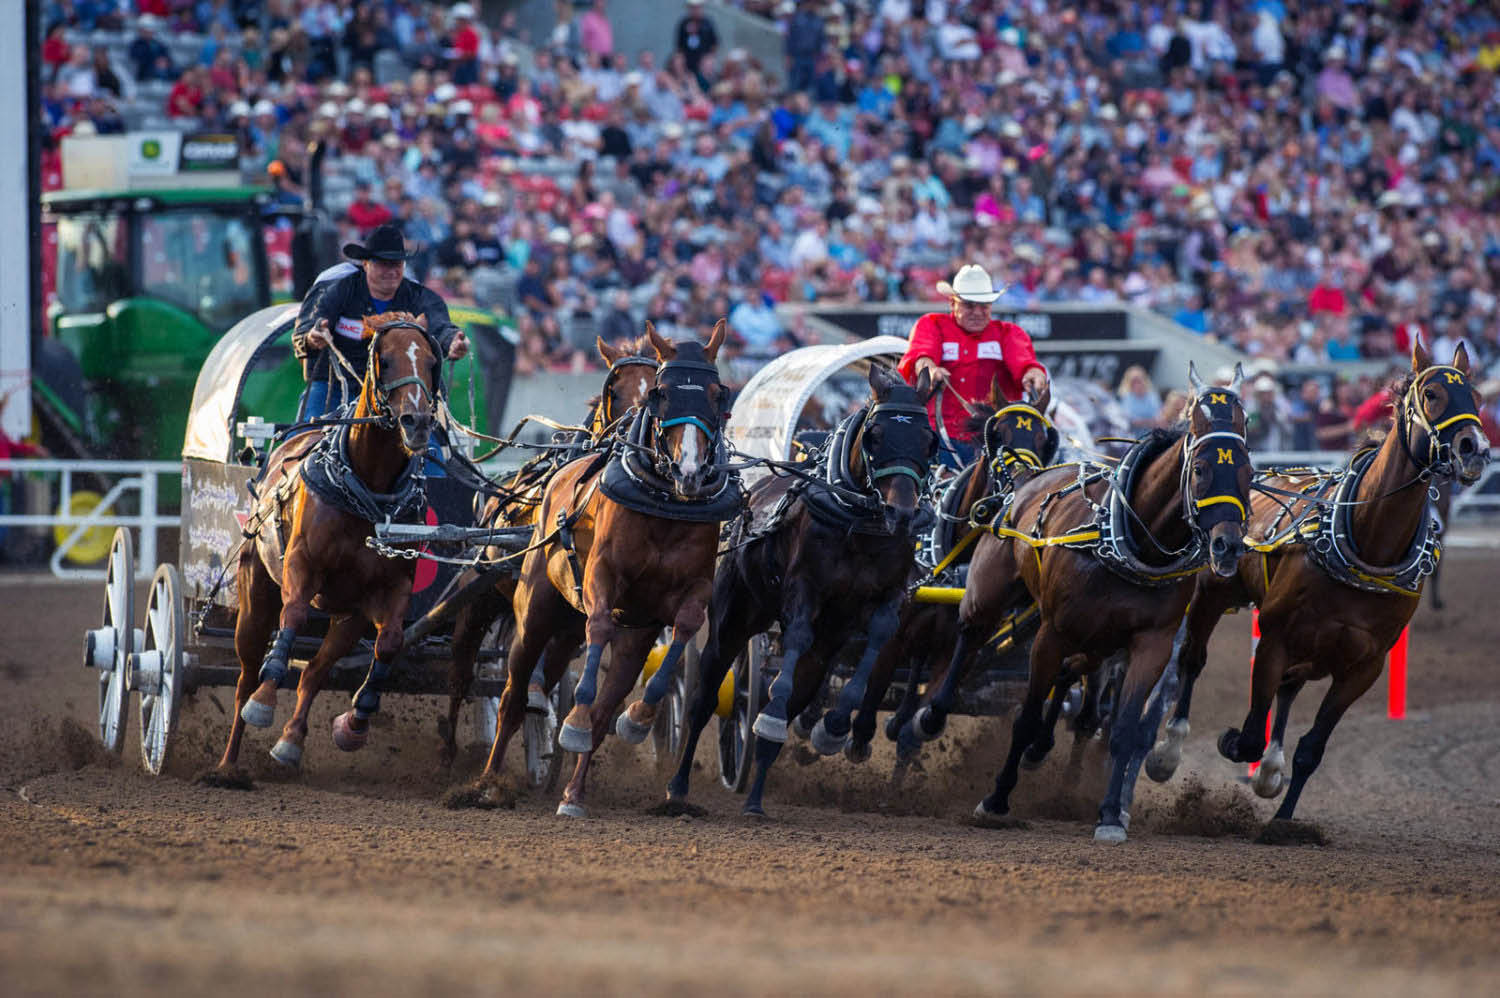 Is Calgary Stampede Really The Greatest Show On Earth